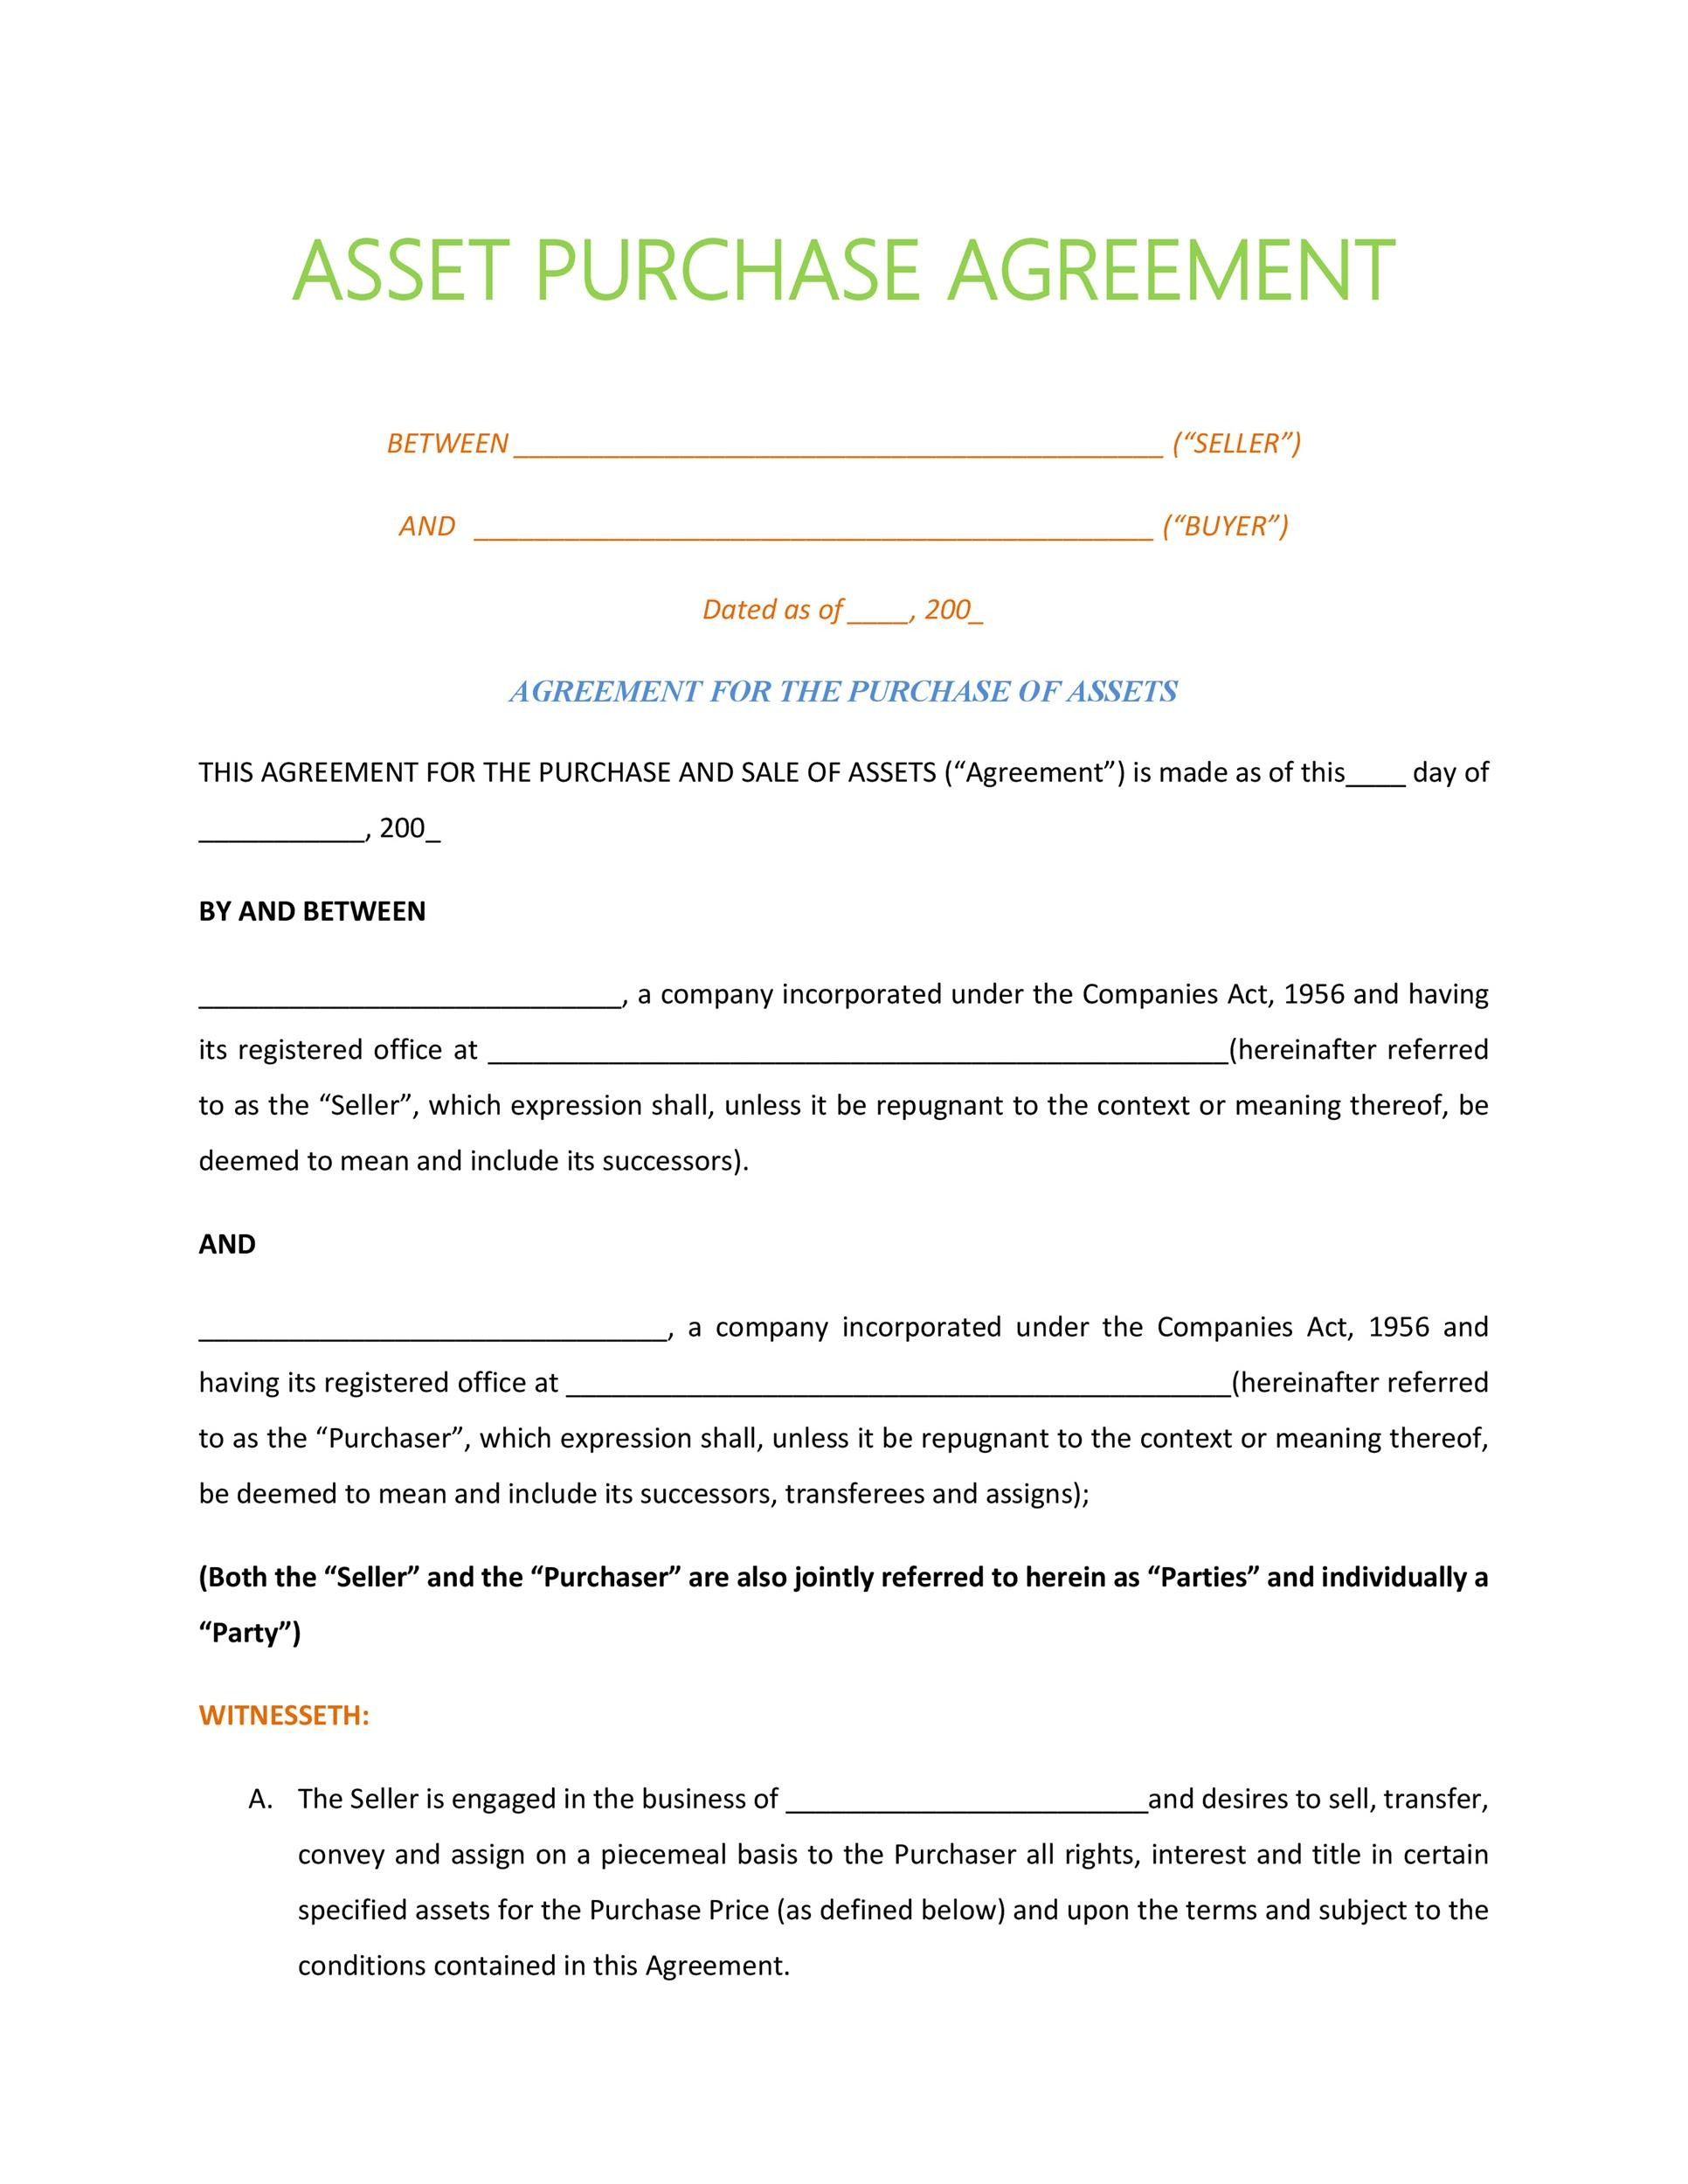 37 Simple Purchase Agreement Templates [Real Estate, Business]